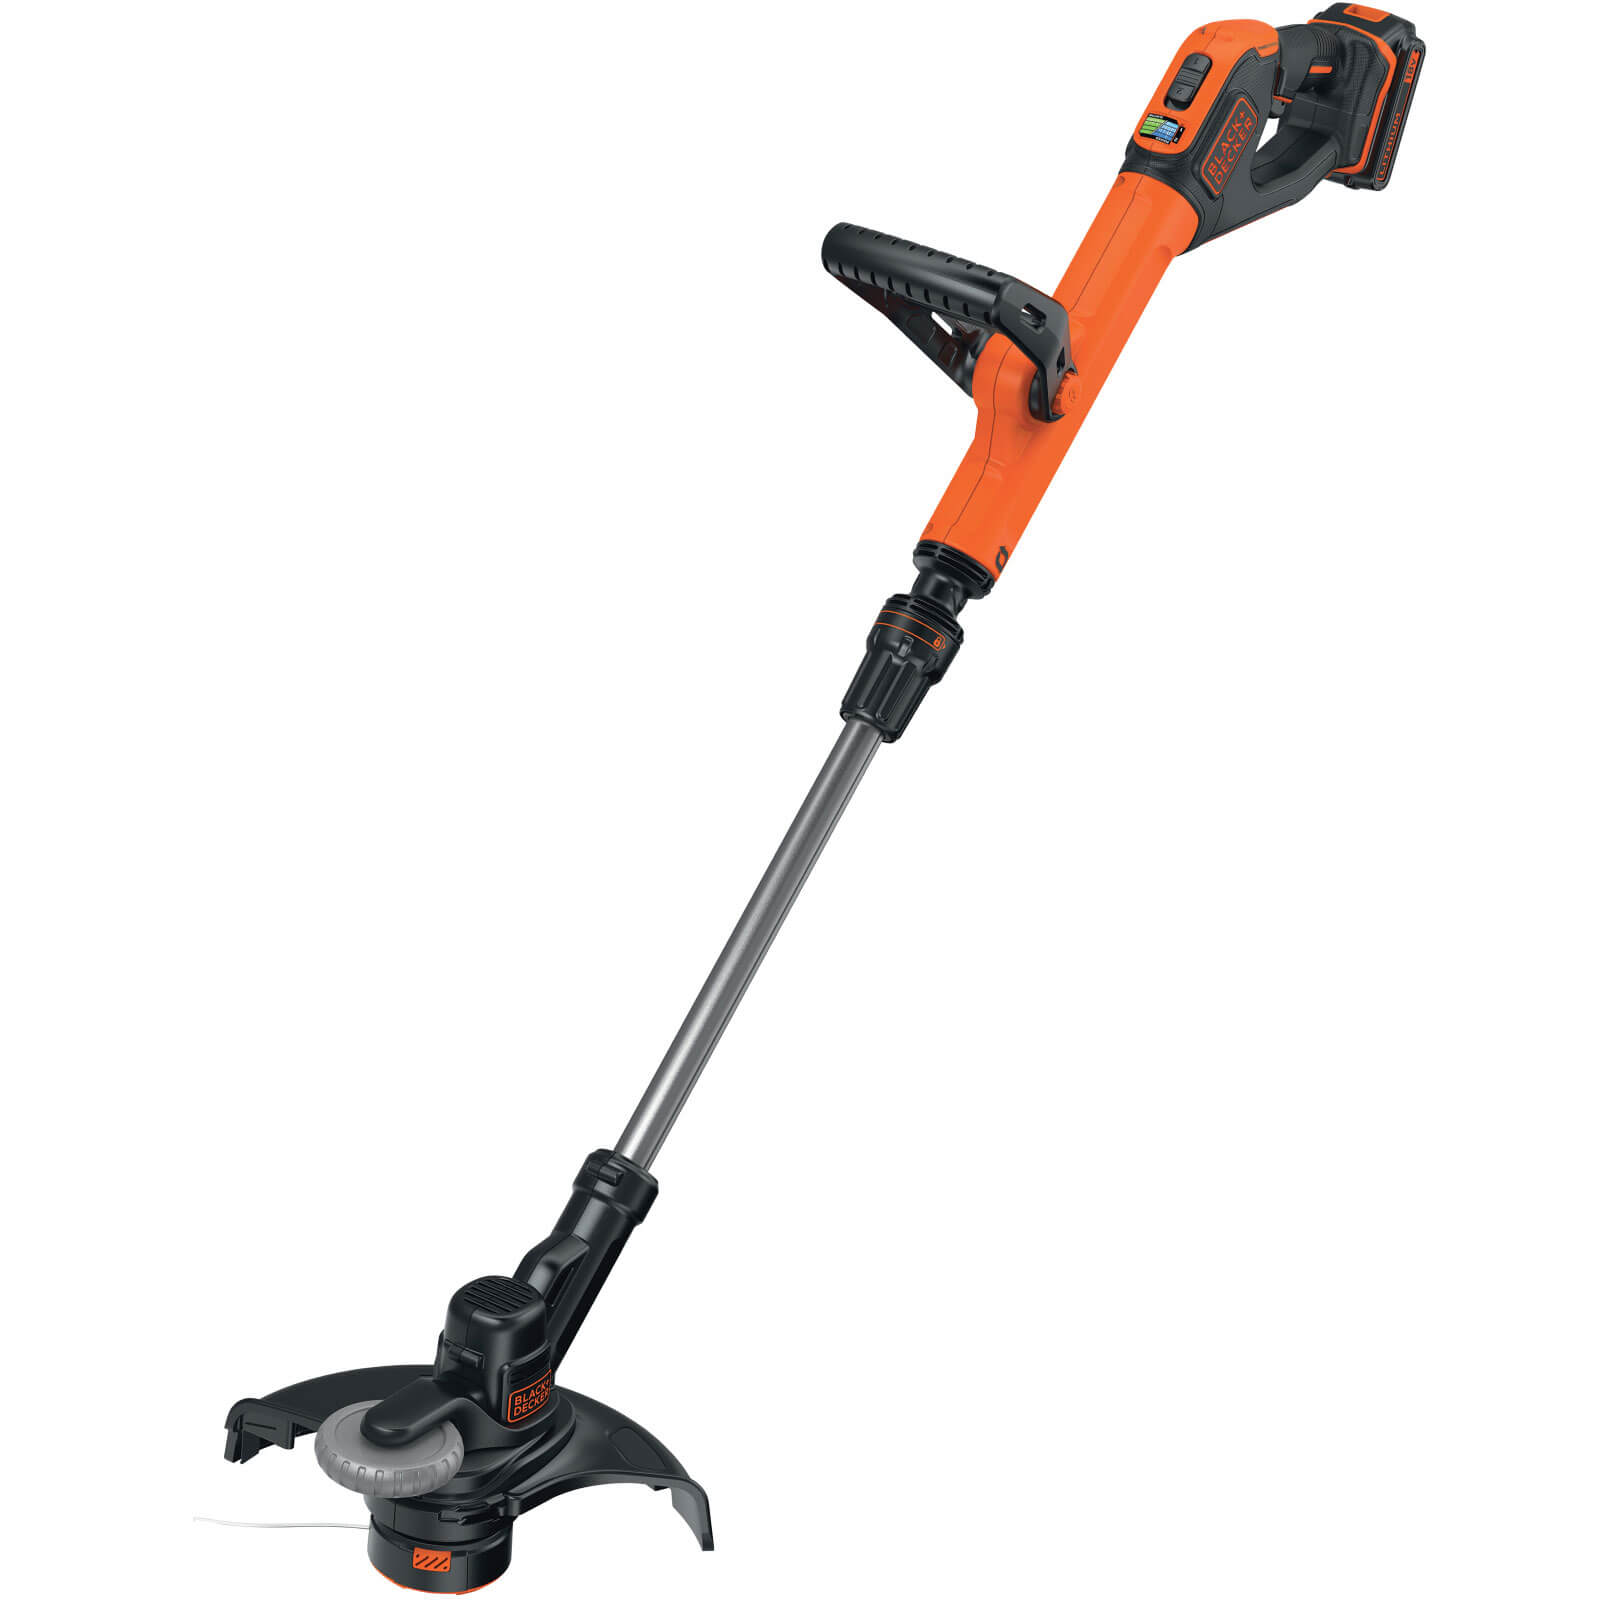 decker trimmer 18v cordless grass